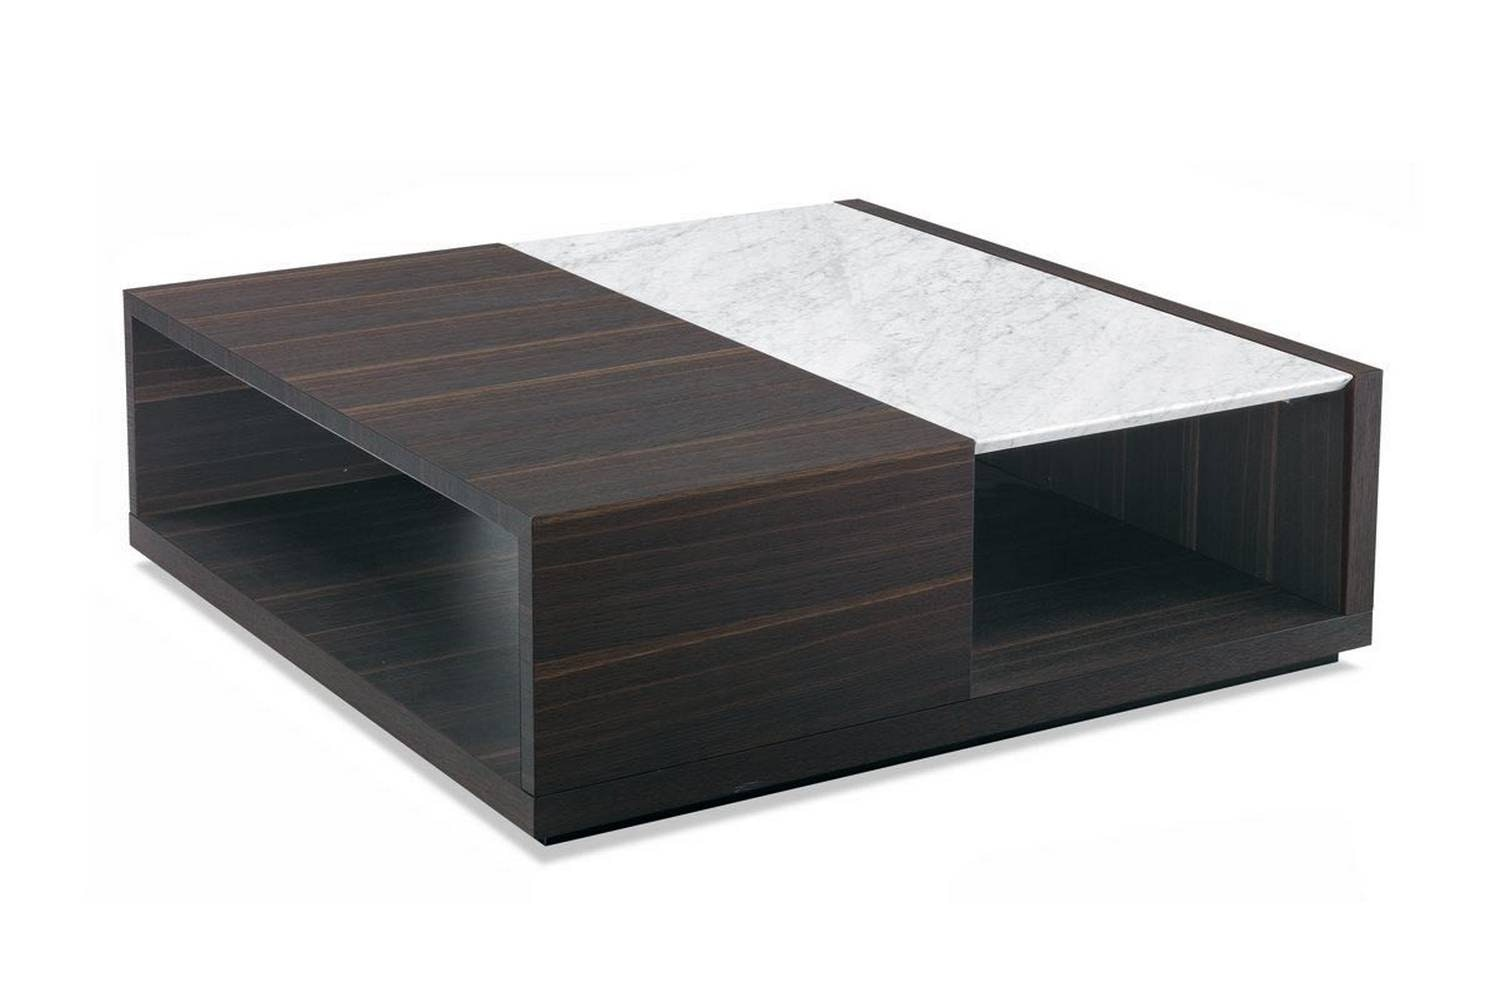 Class Coffee Table by Matteo Nunziati for Poliform